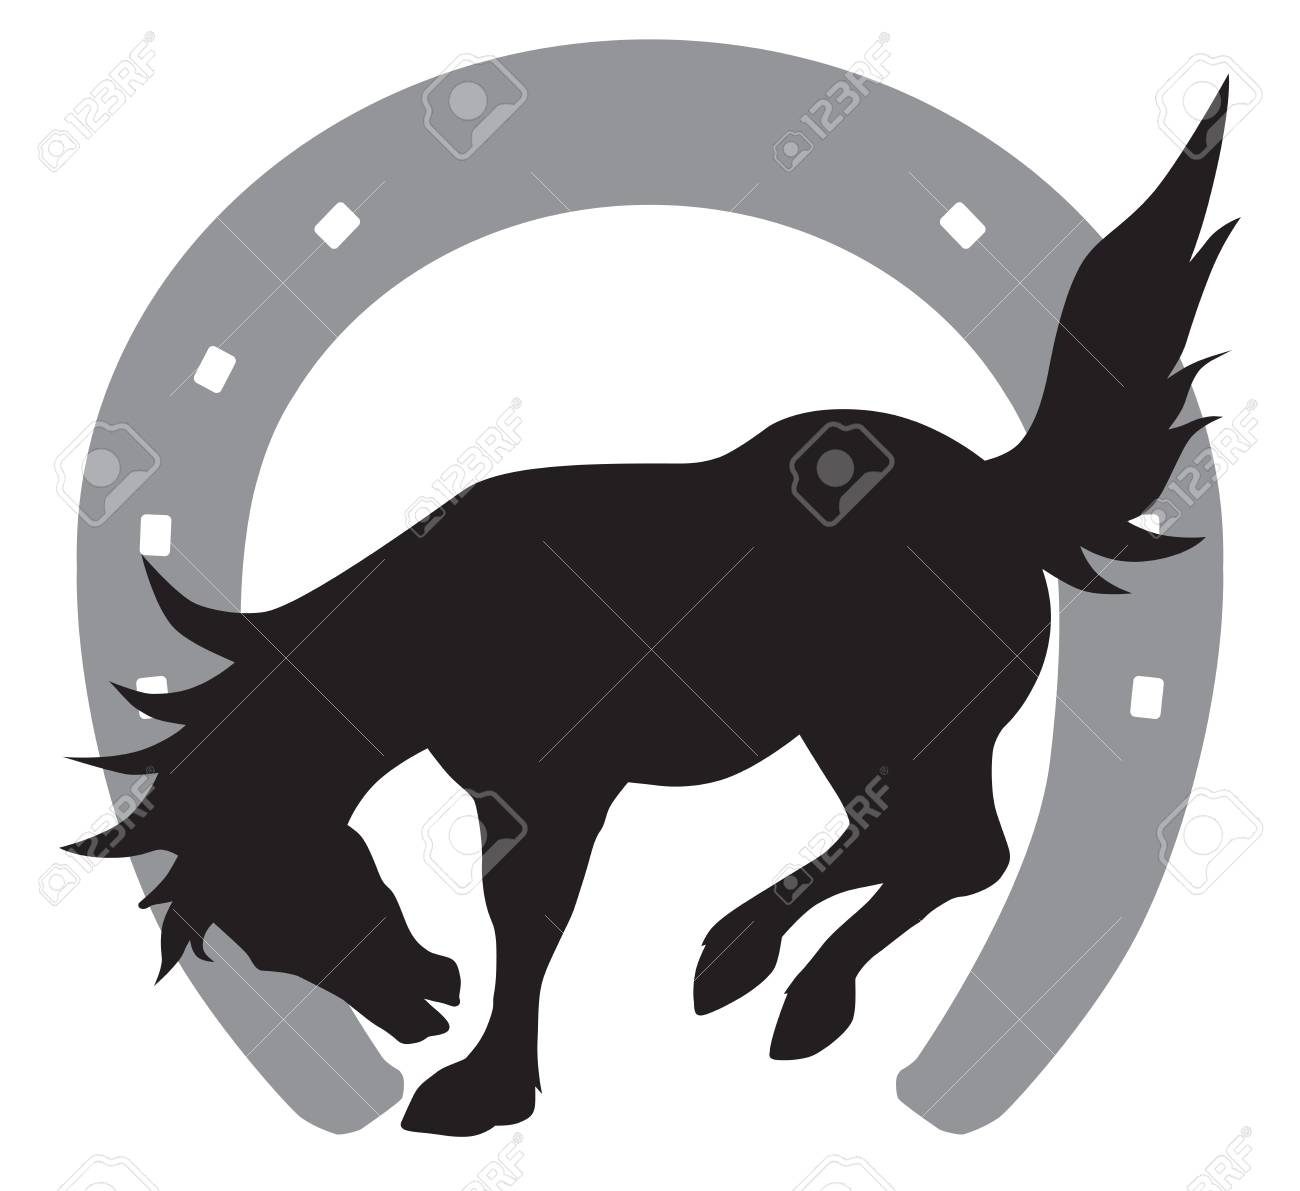 Silhouette Of Bucking Horse In Front Of Horse Shoe Royalty Free Cliparts Vectors And Stock Illustration Image 90880935